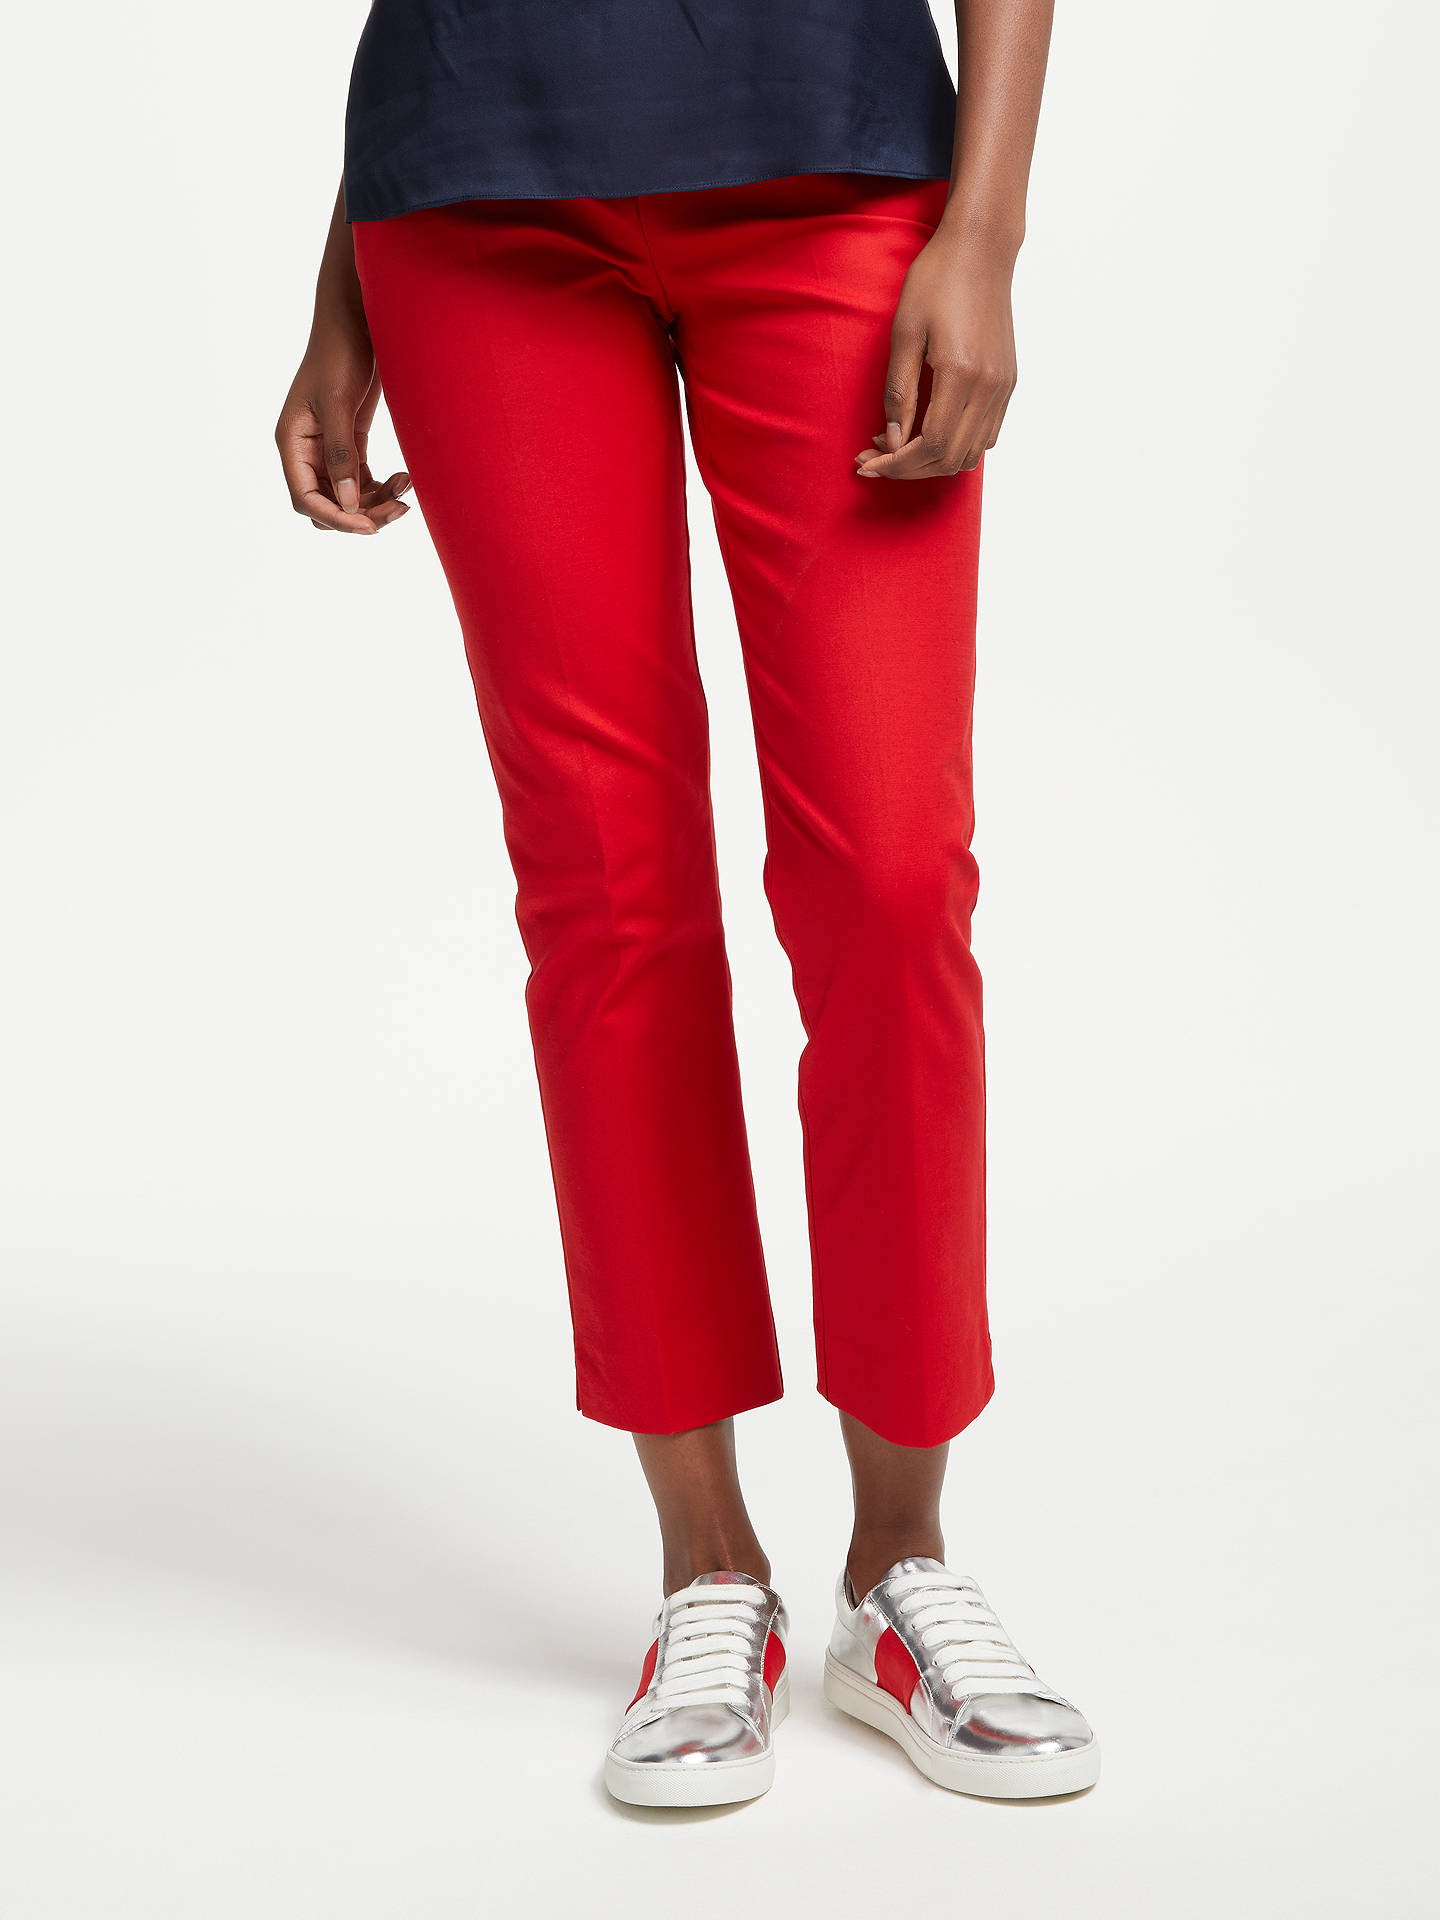 BuyBoden Richmond 7/8 Trousers, Poinsettia, 10 Online at johnlewis.com